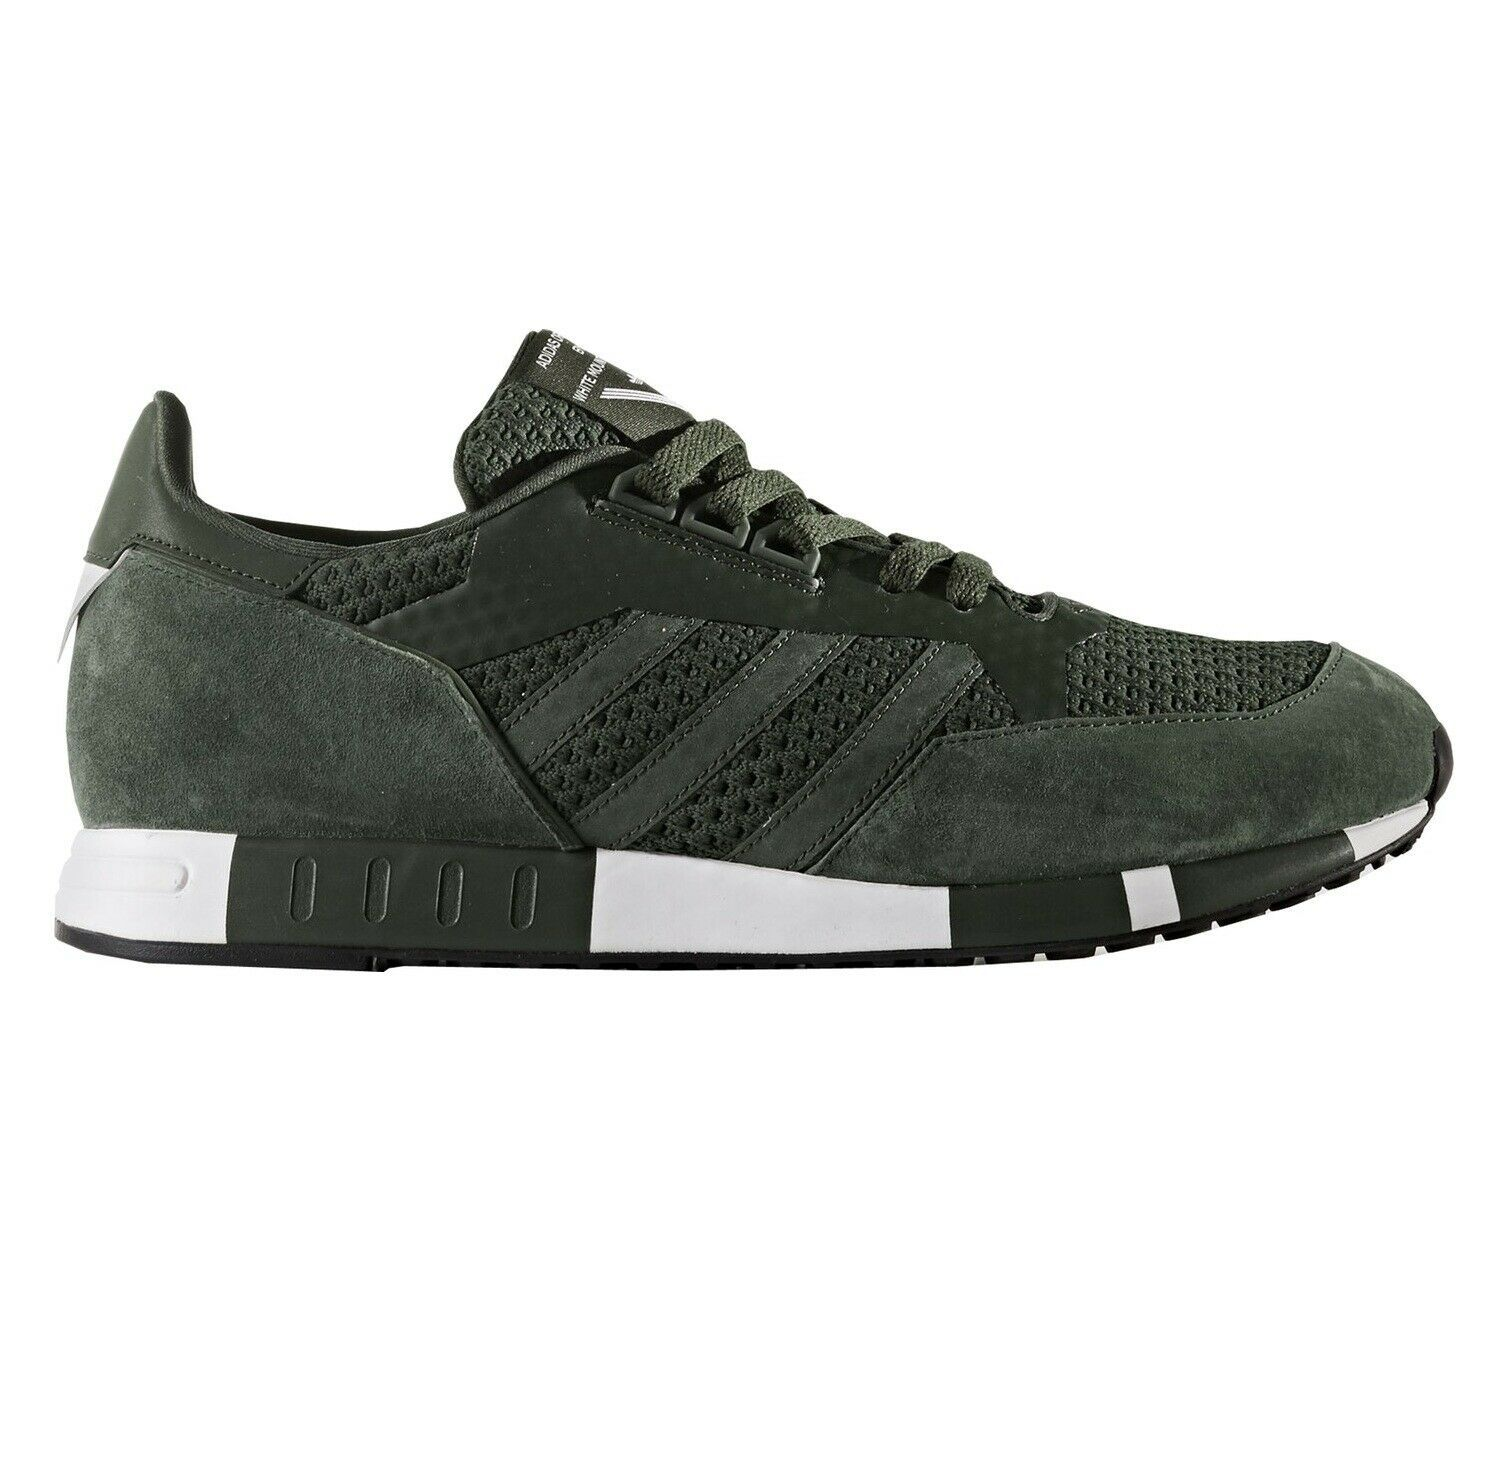 Primary image for Adidas White Mountaineering Boston Super Primeknit Green CG3669 Mens Outdoor